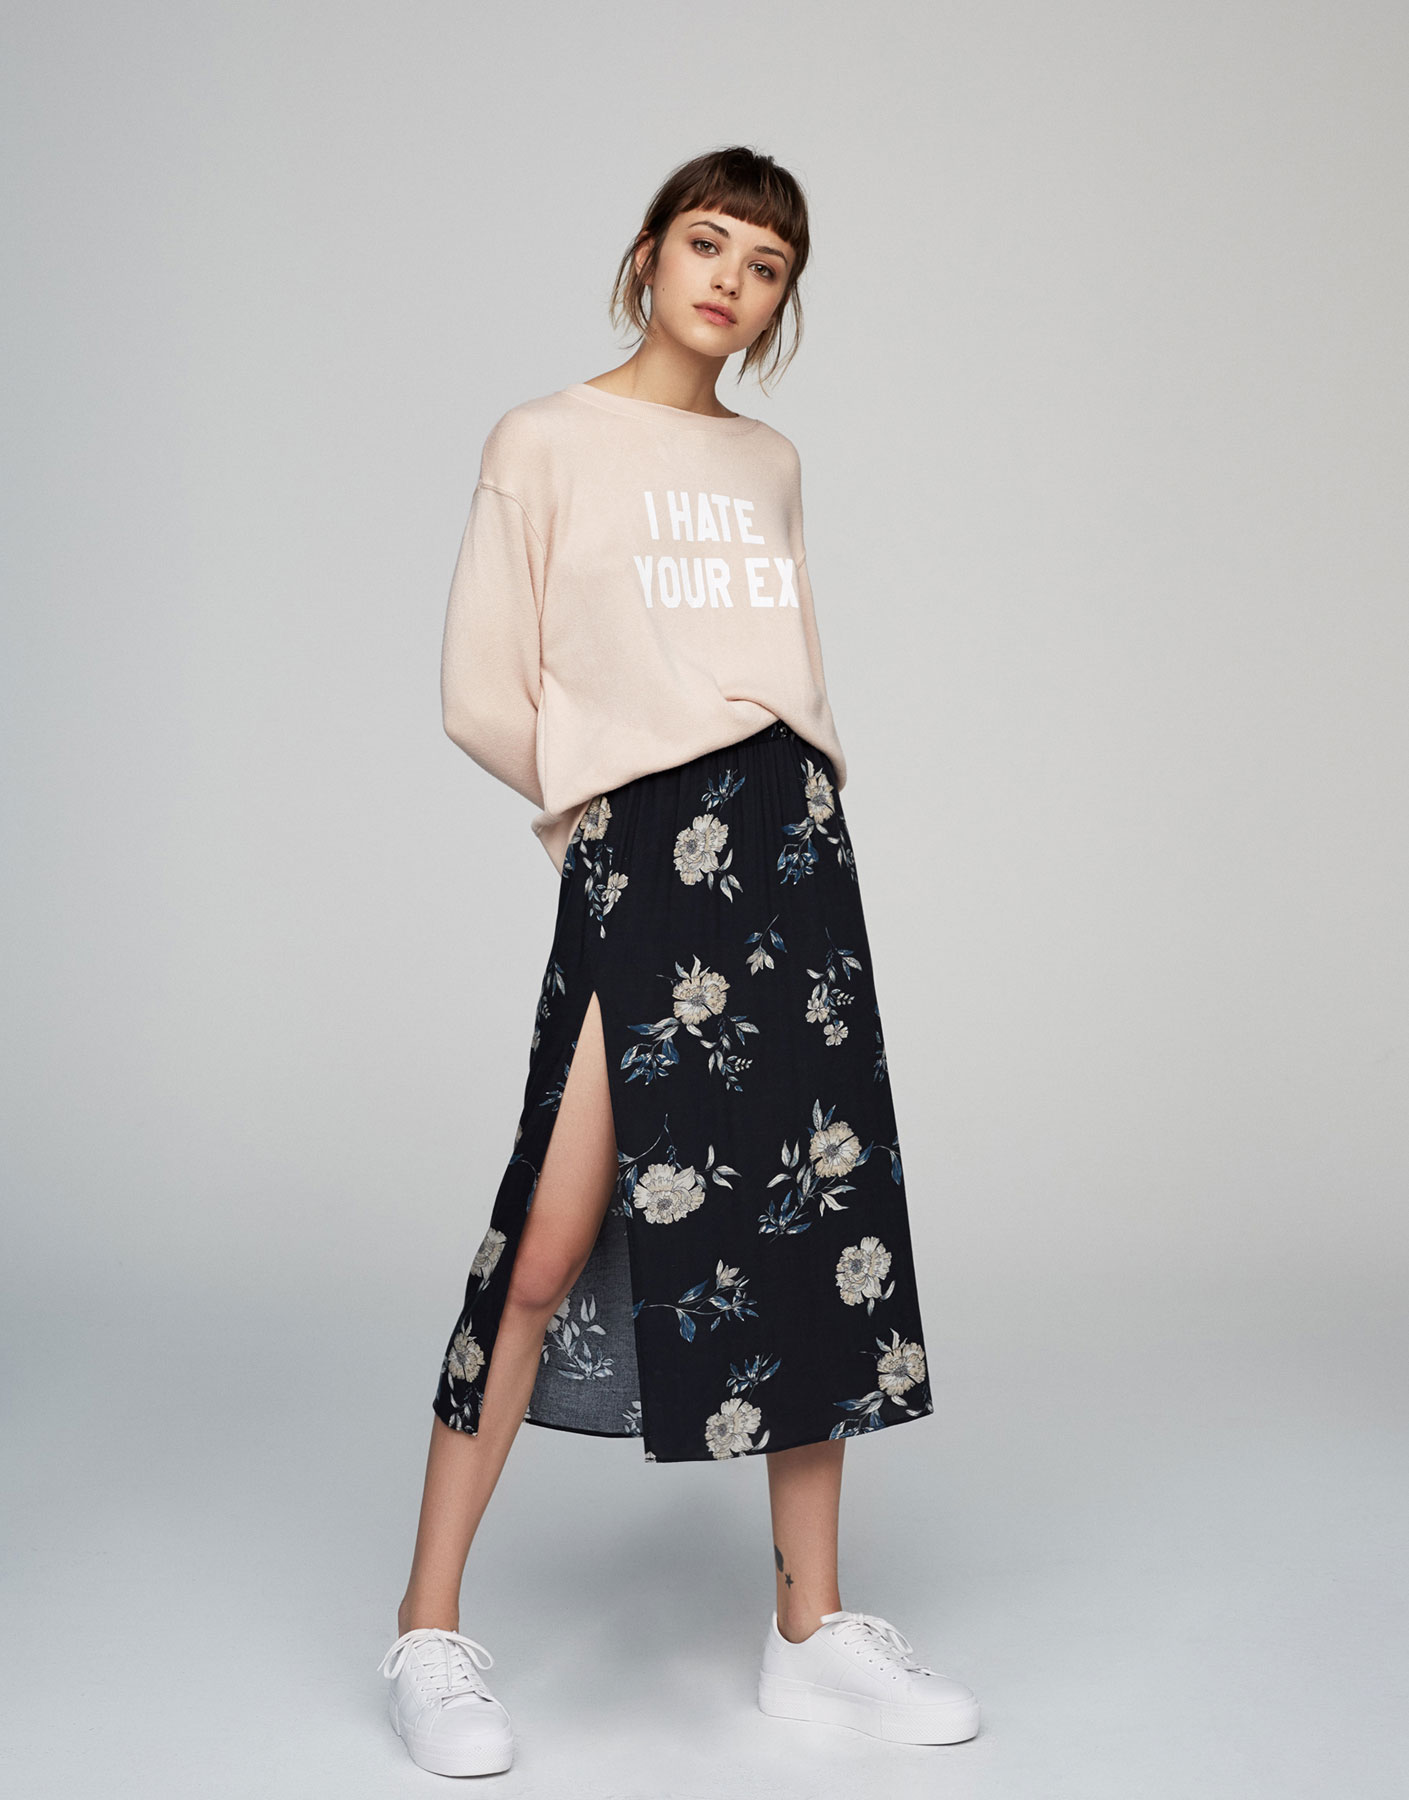 Floral skirt with side slit